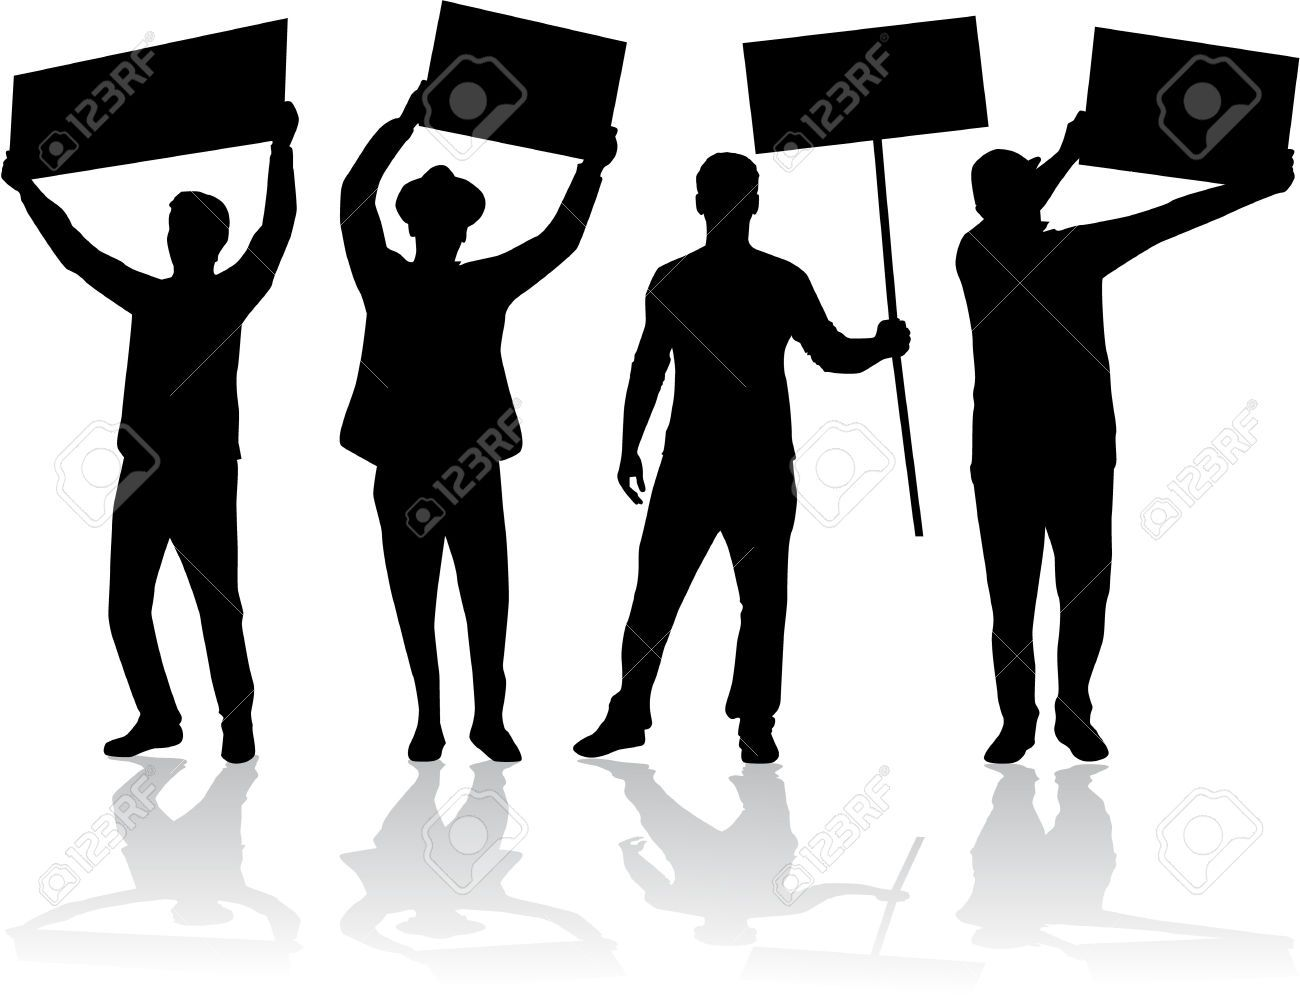 People Protesting Clipart - Free Clip Art Images | Shapes ...